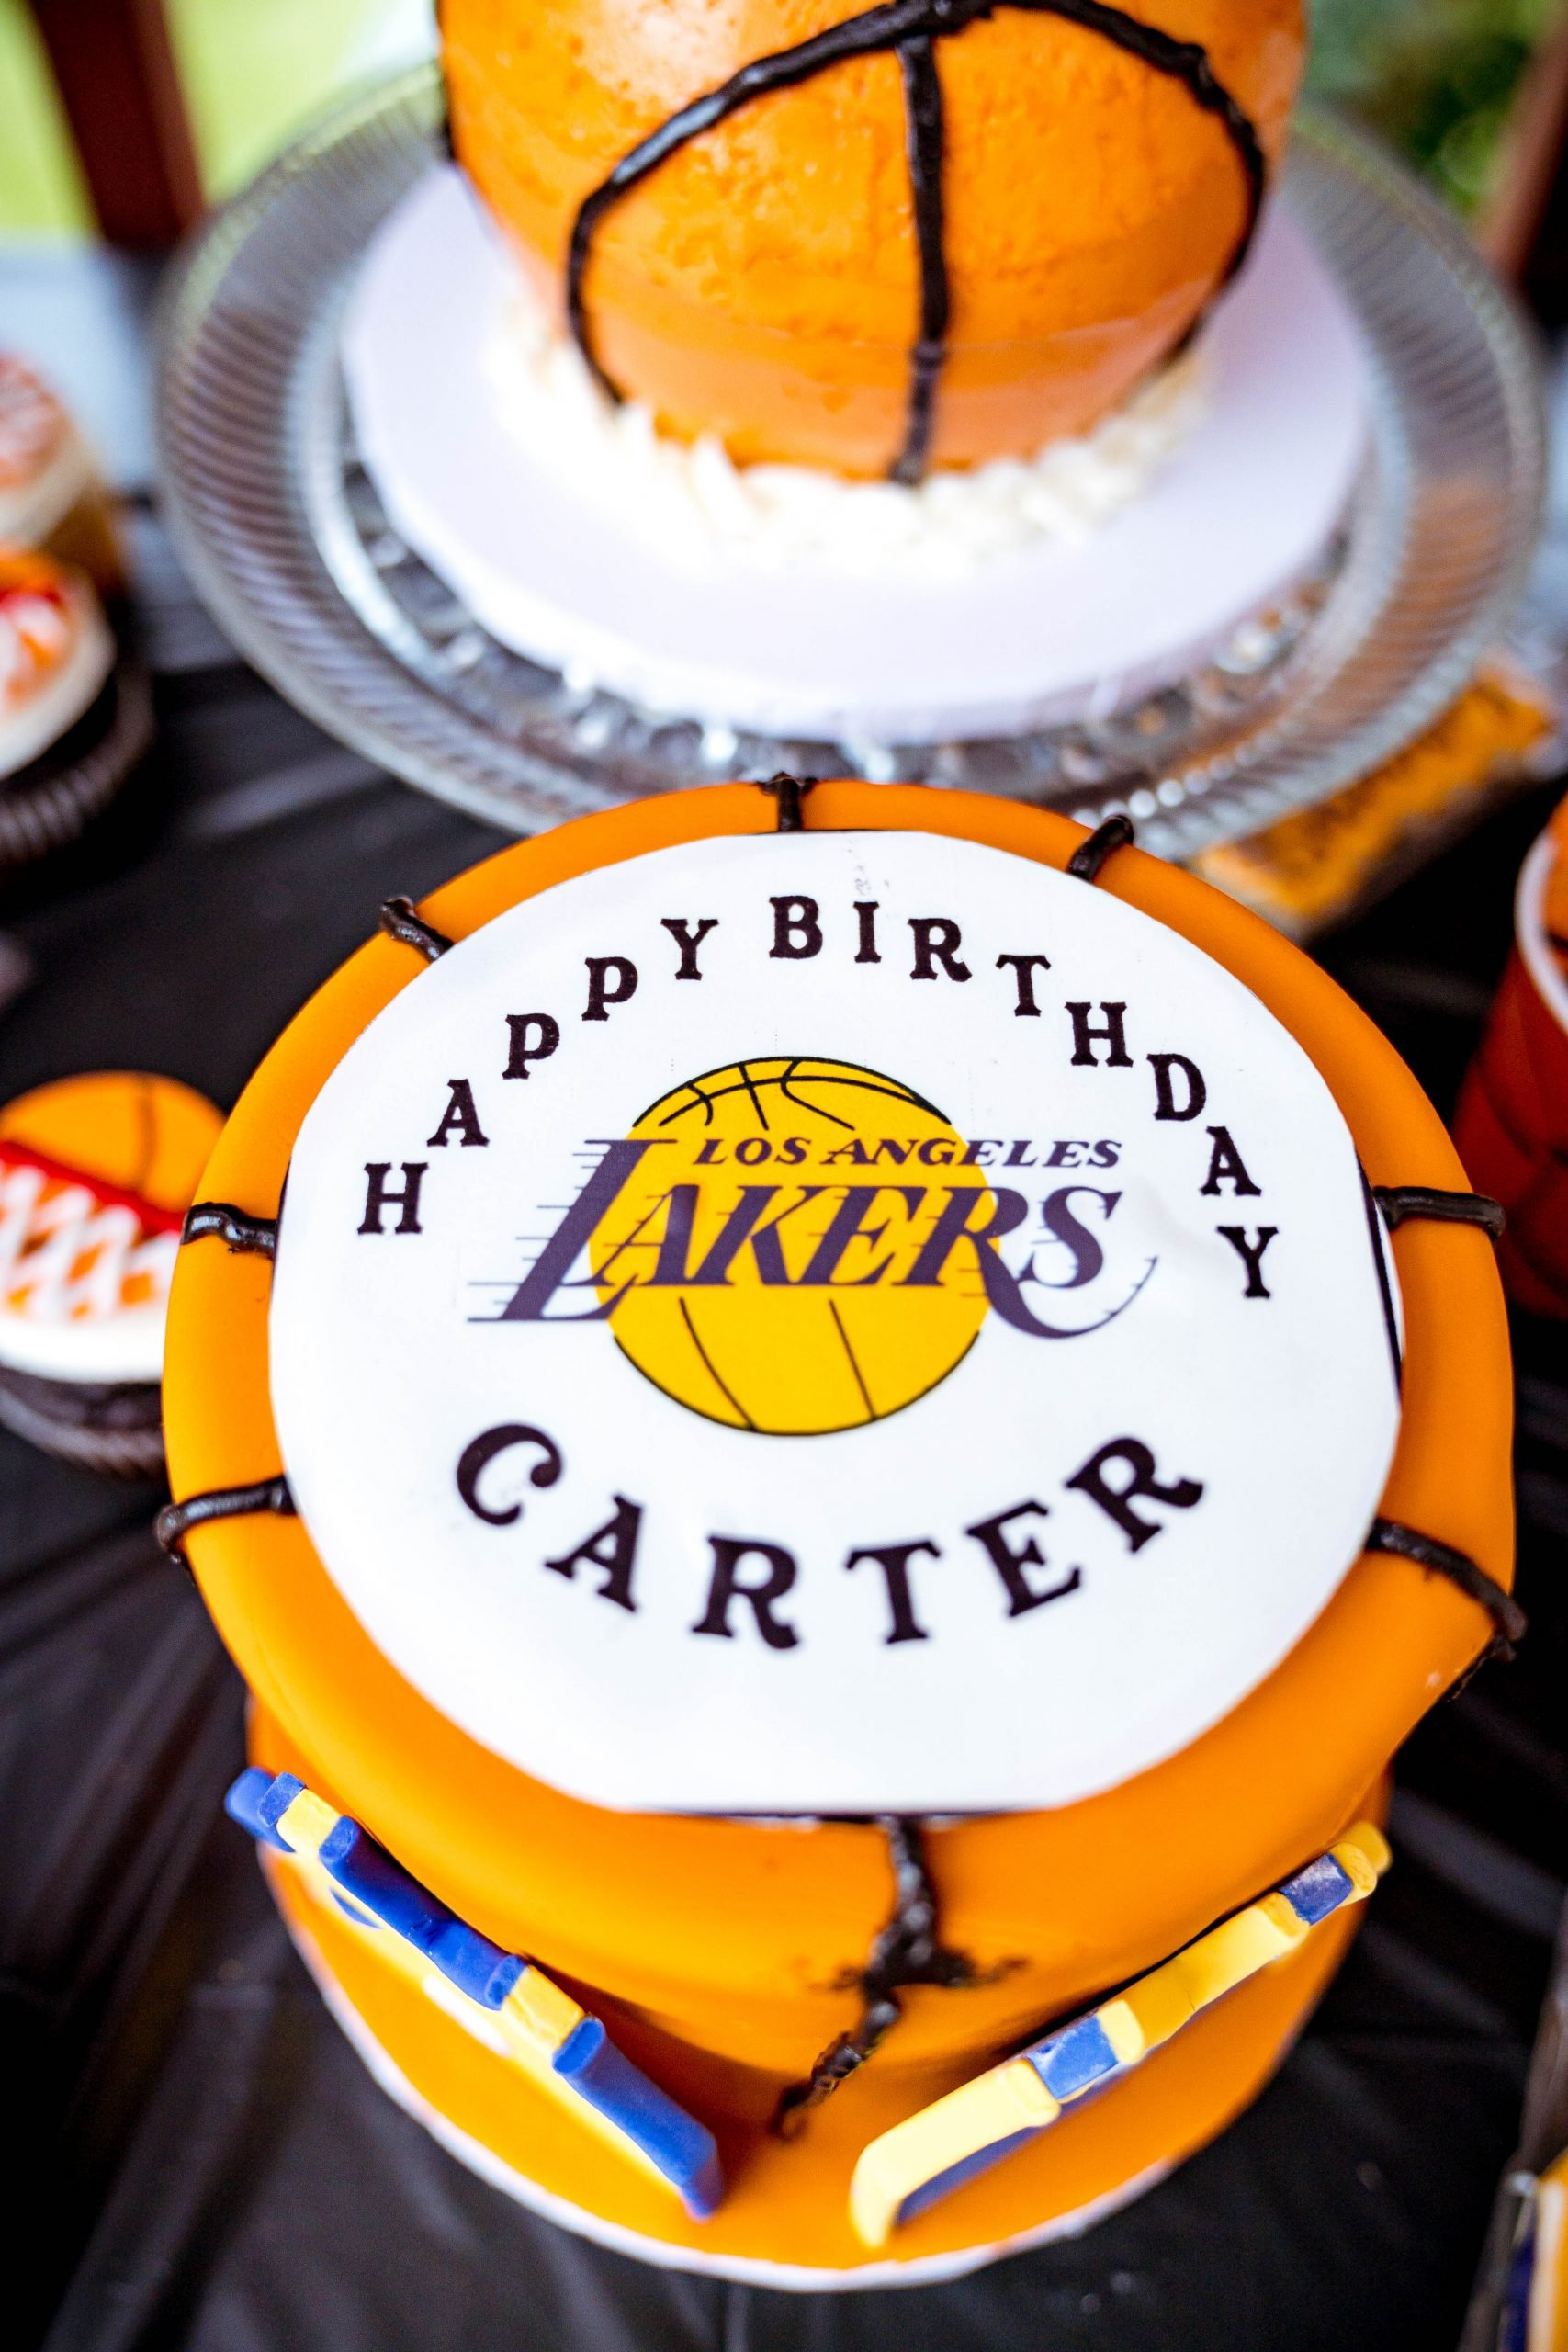 livinglesh lakers first birthday party cake